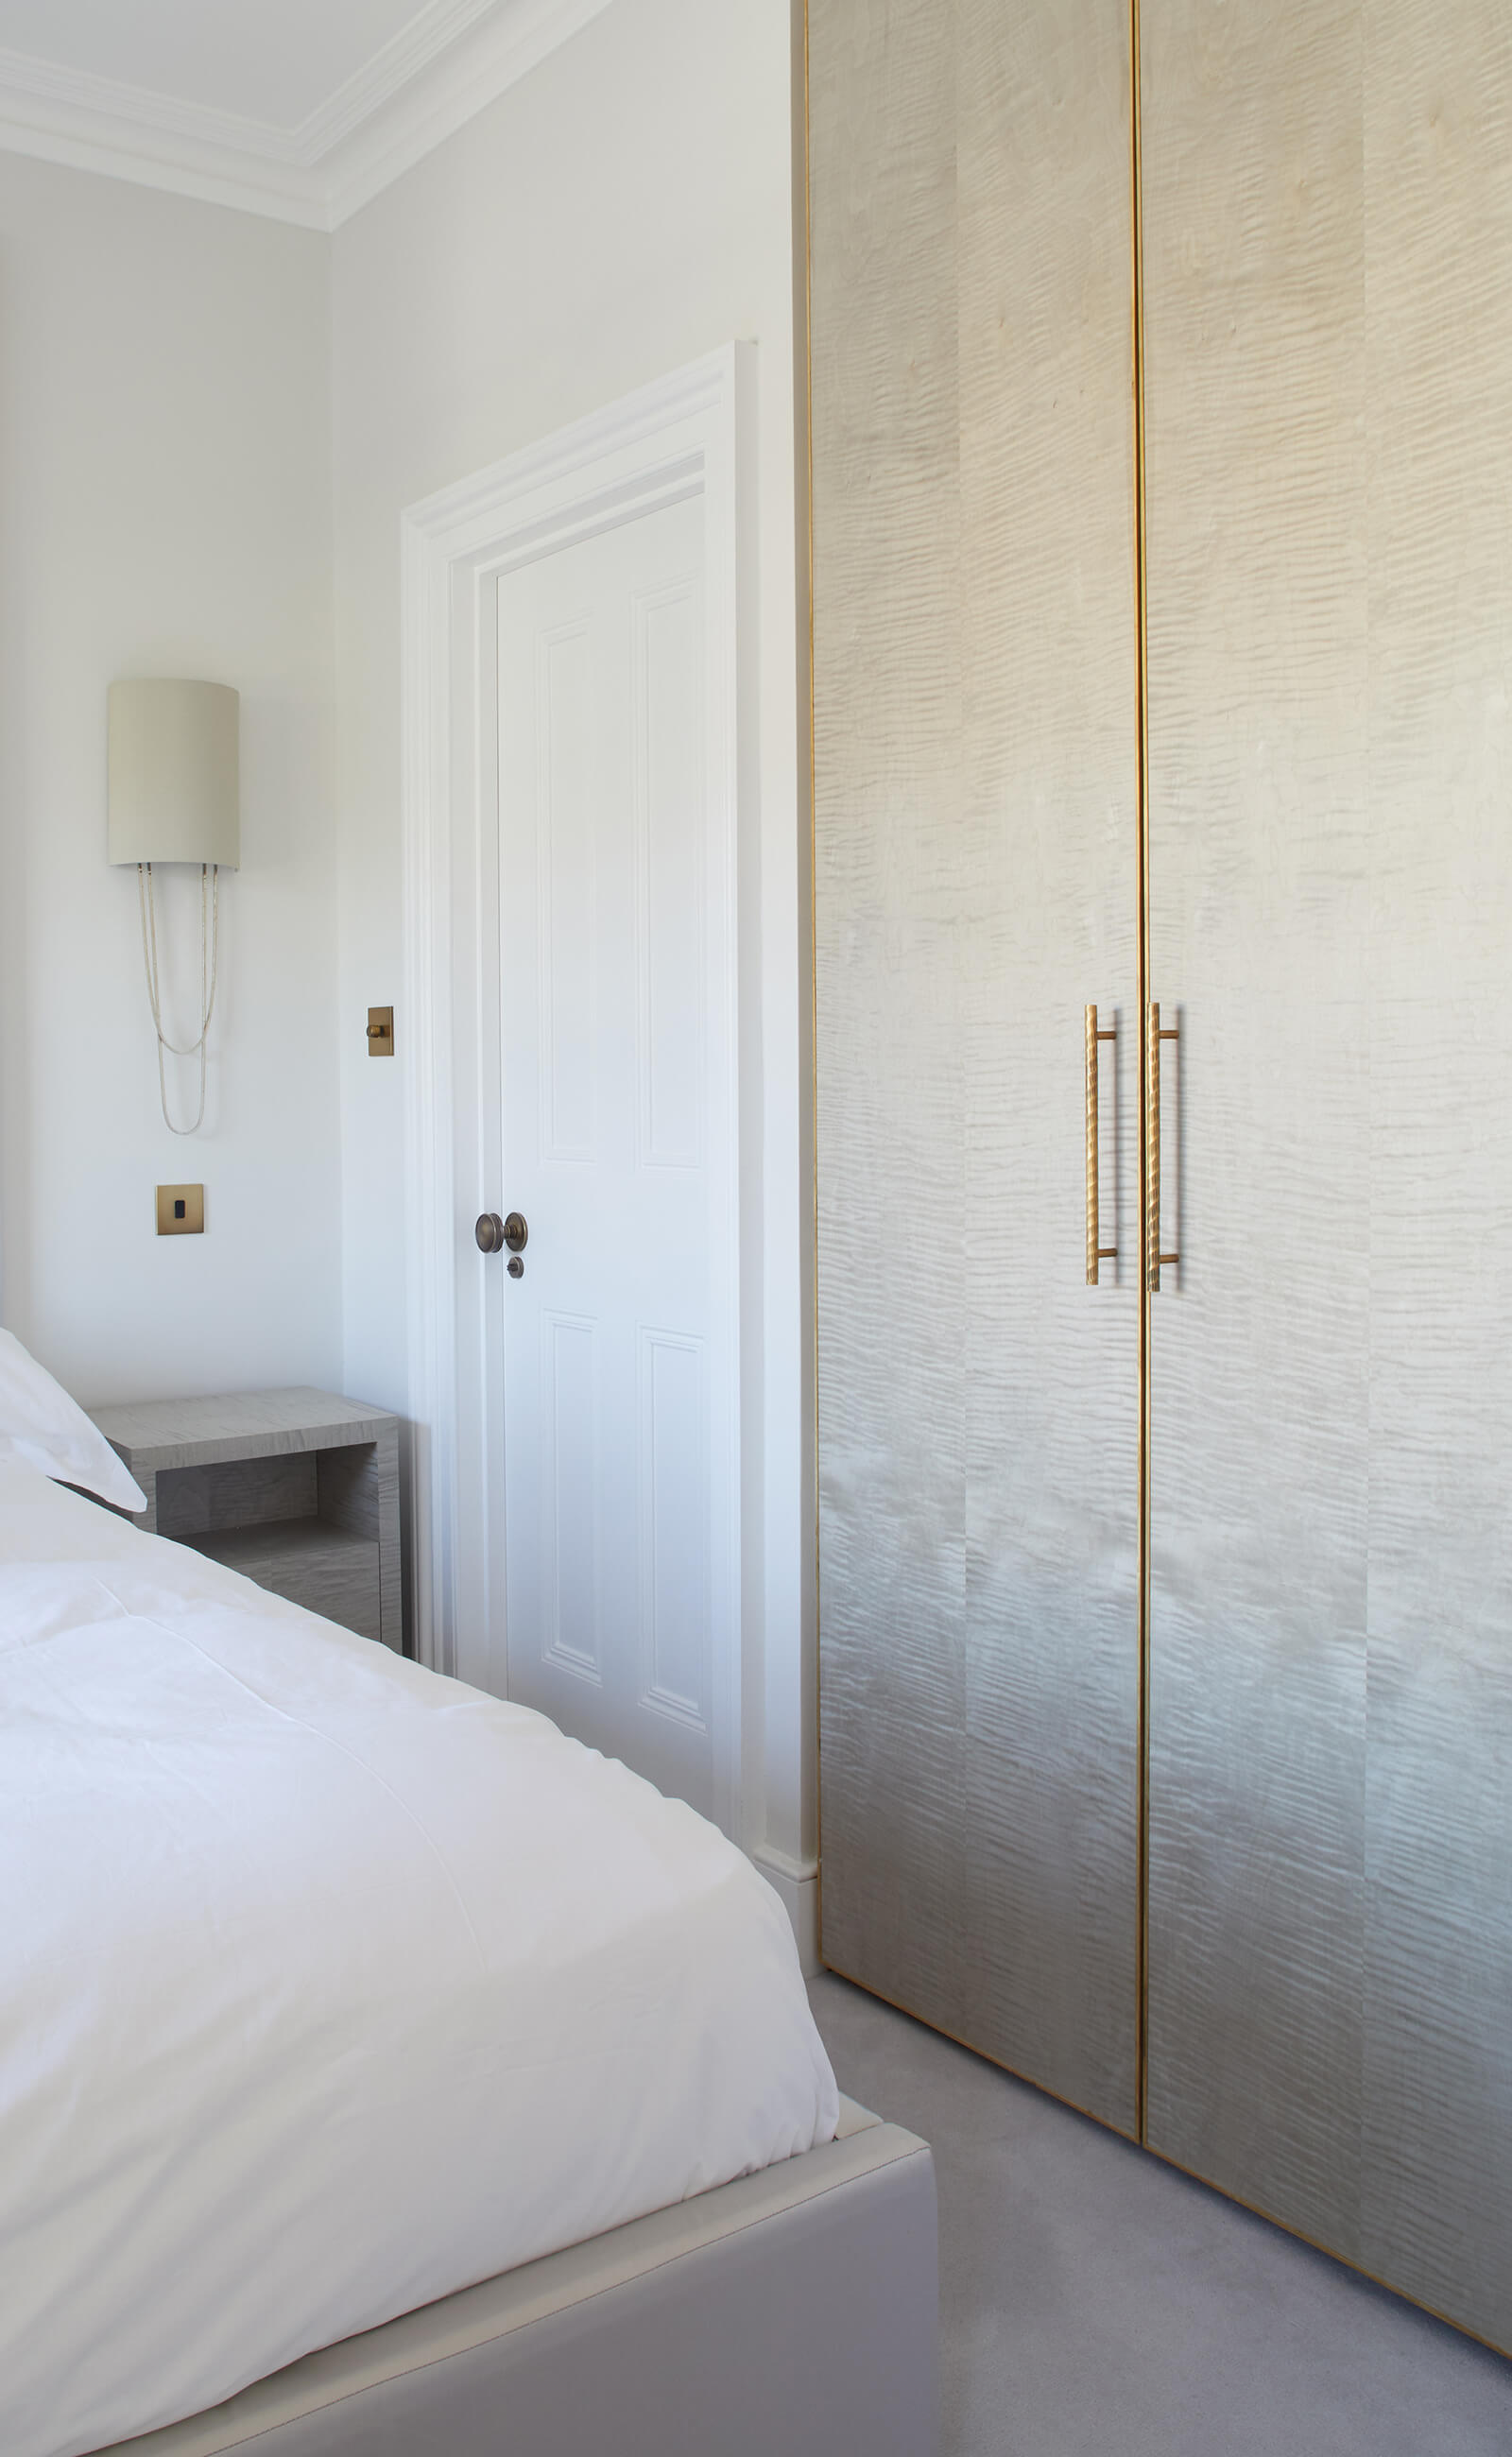 Custom wardrobe cabinetry with brass detail in a serene bedroom